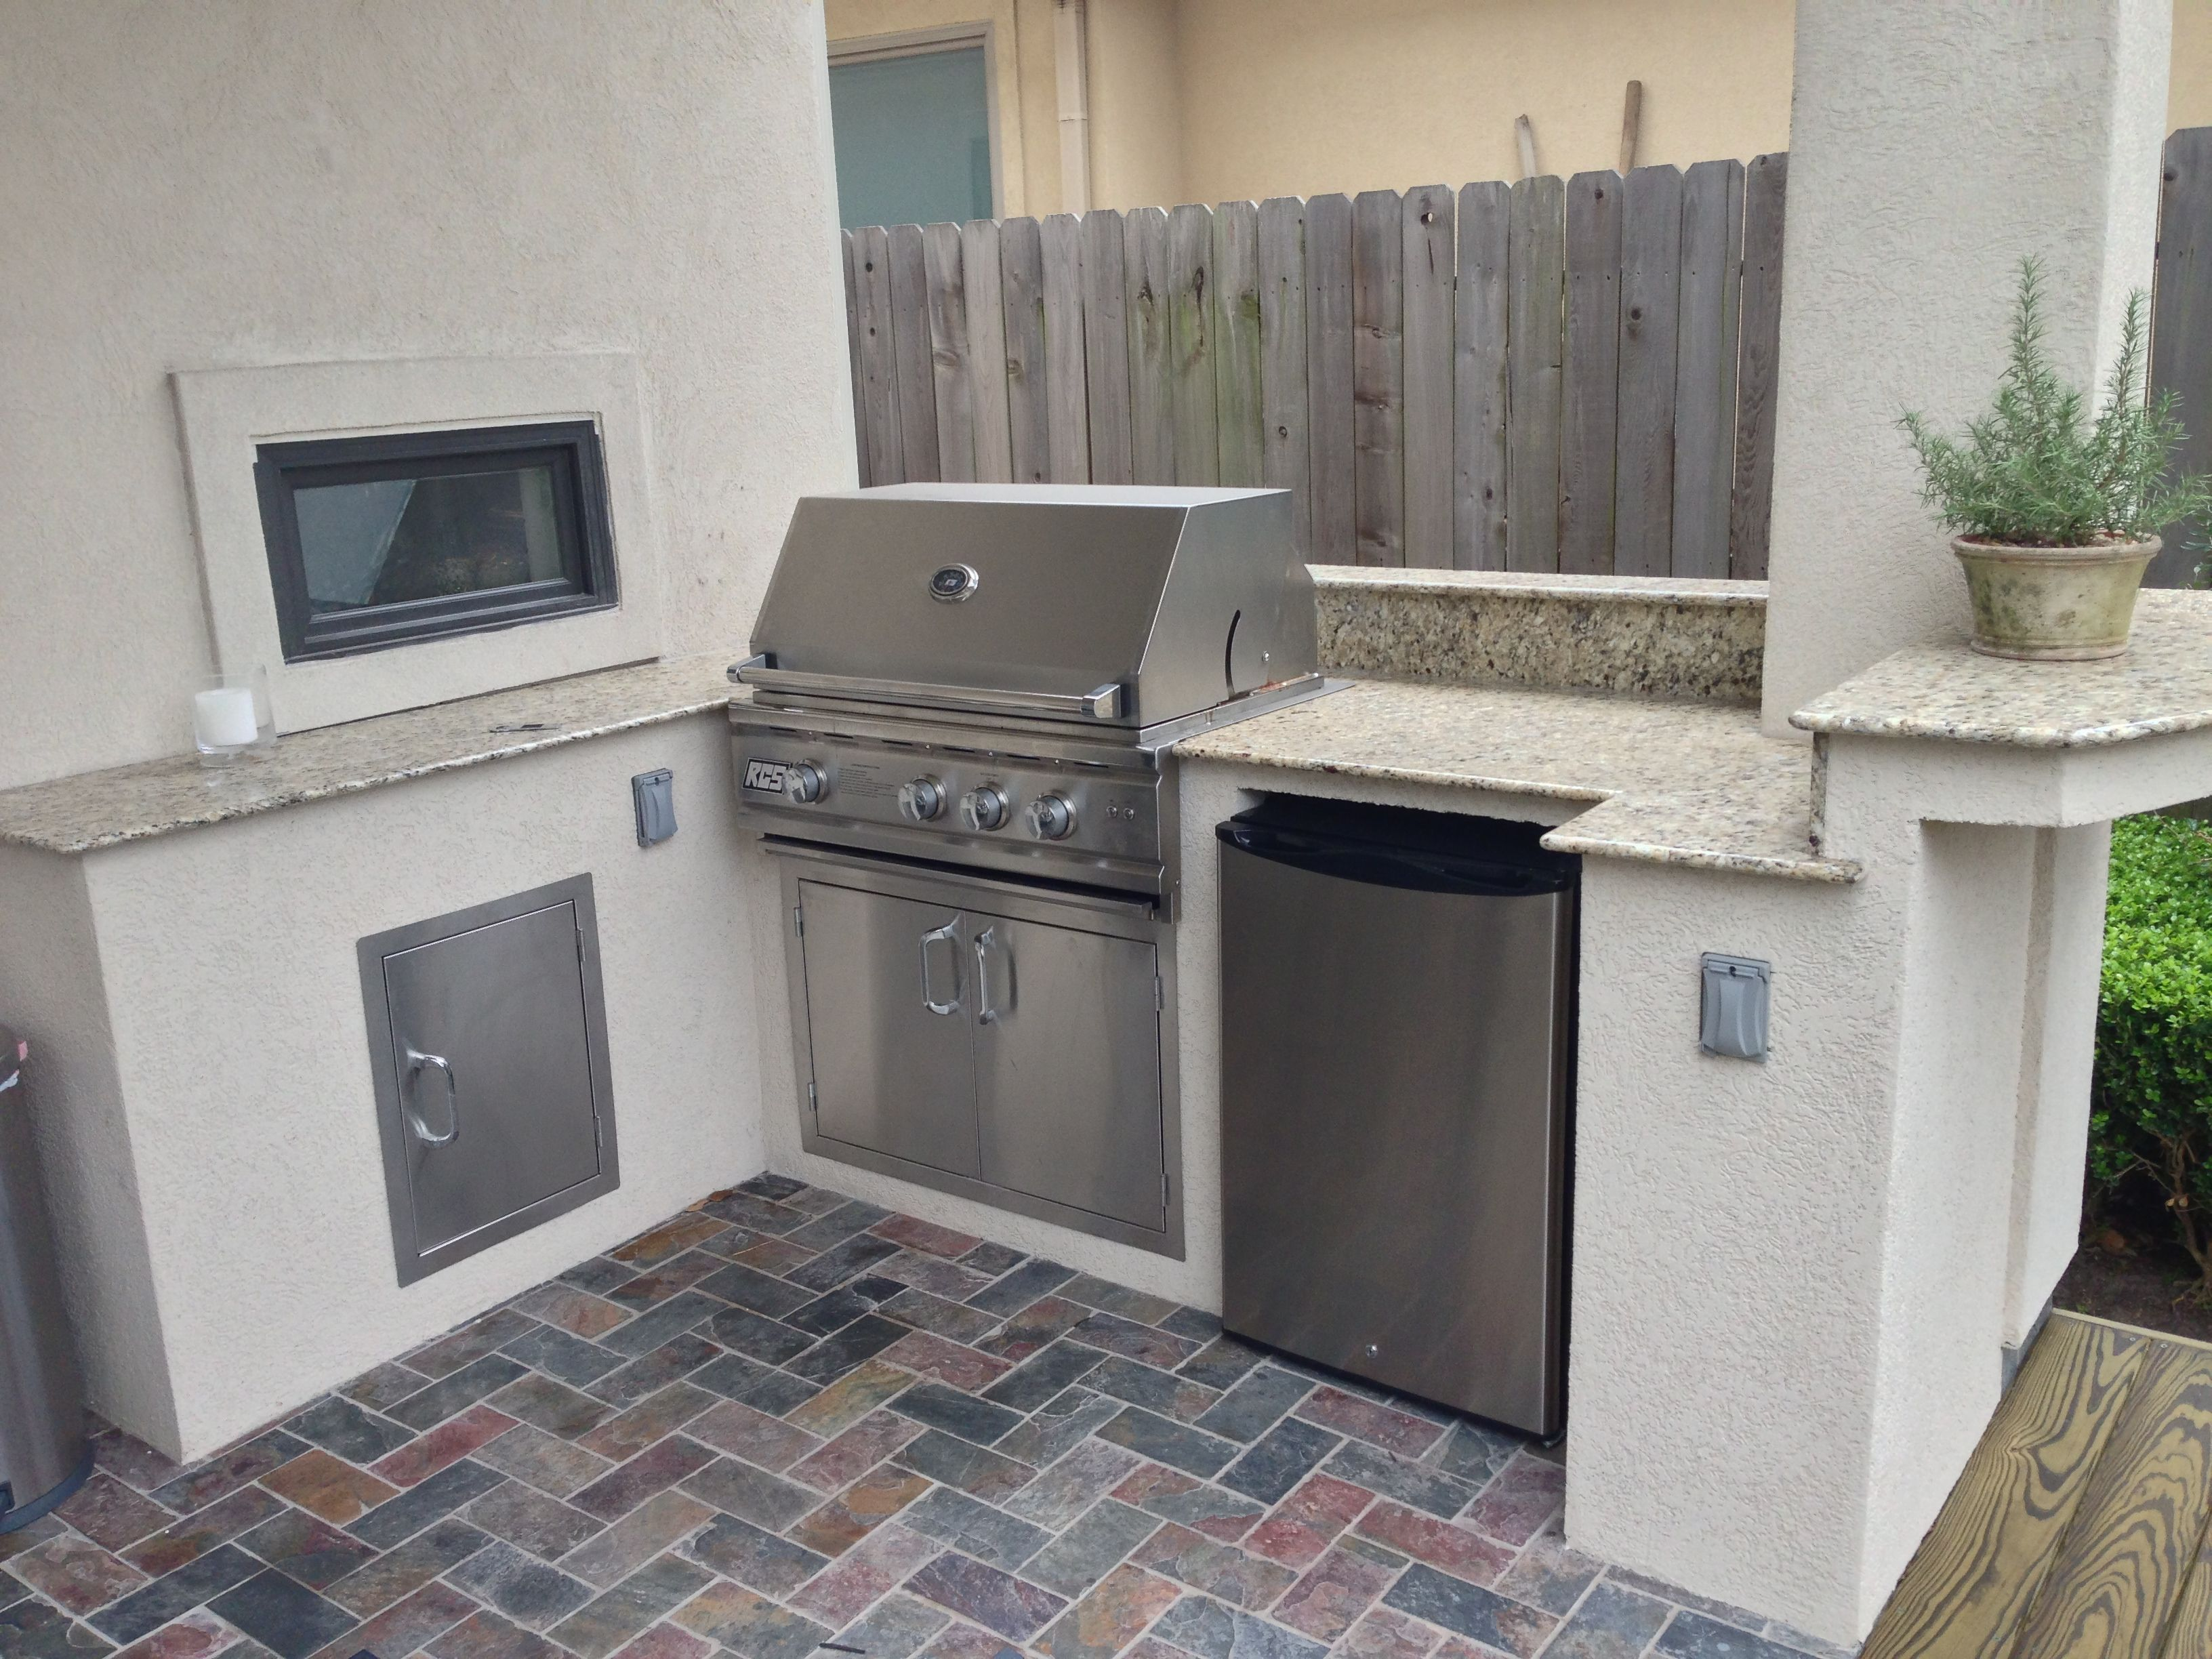 Custom Stucco Outdoor Kitchen With A Small Raised Counter For Bar Seating We Matched The